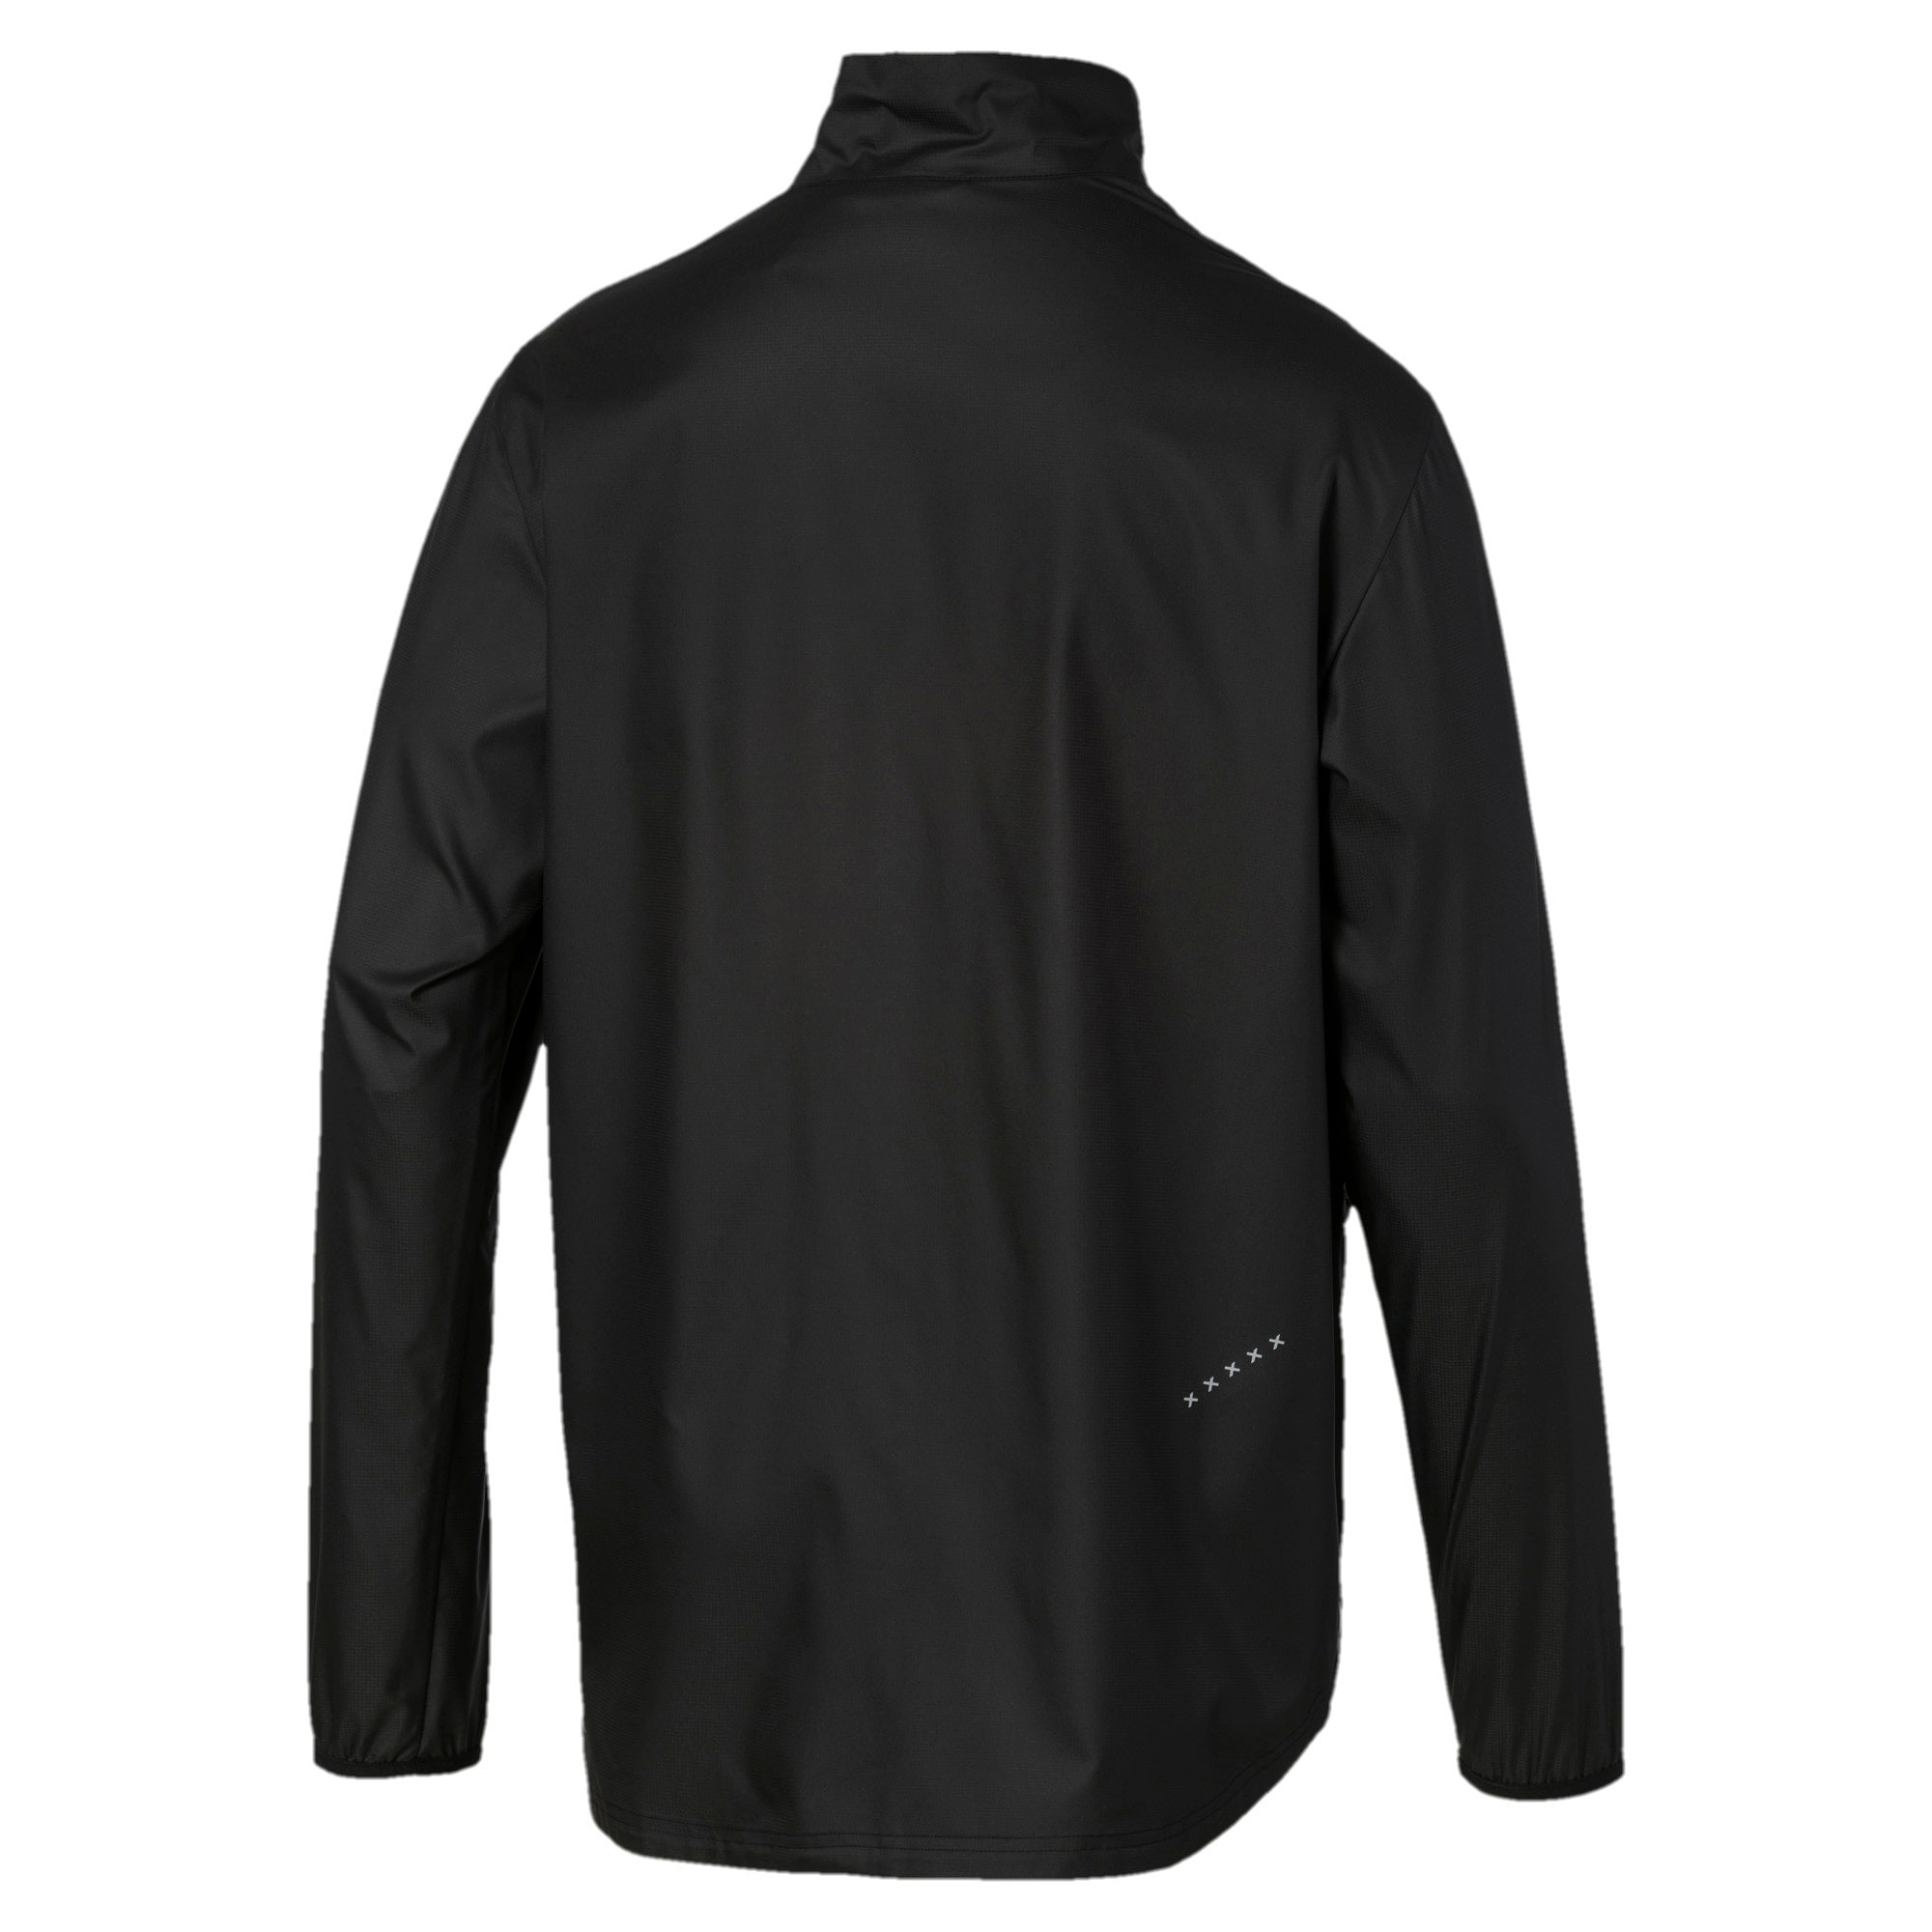 IGNITE Woven Men's Running Track Jacket, Puma Black-Puma Black, large